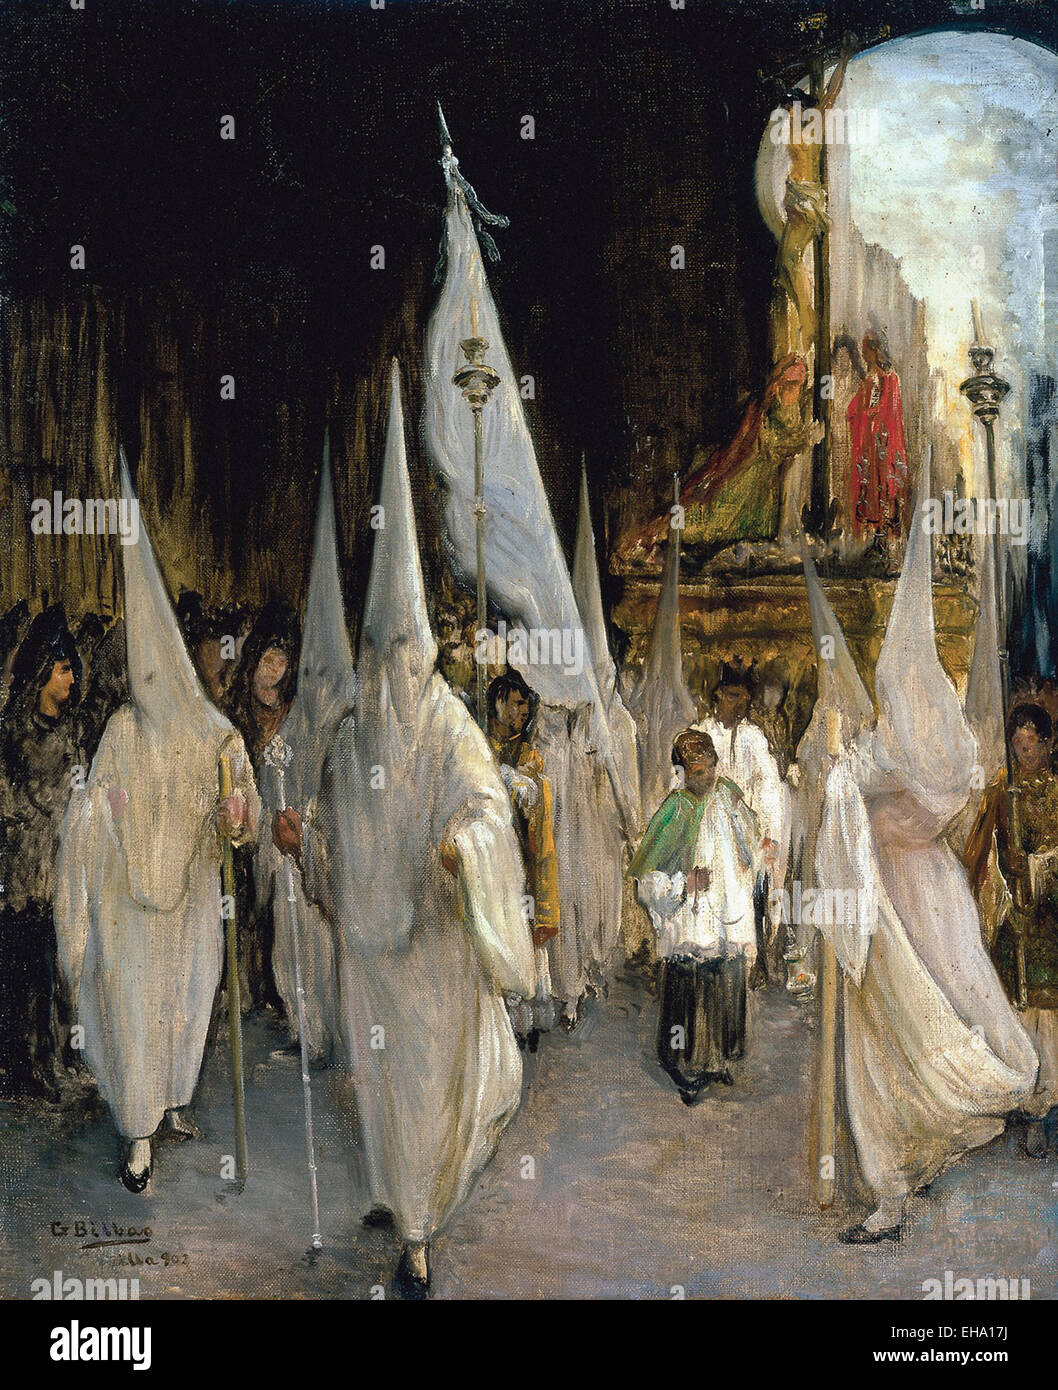 Gonzalo Bilbao Martínez  Procession of the Seven Words - Stock Image